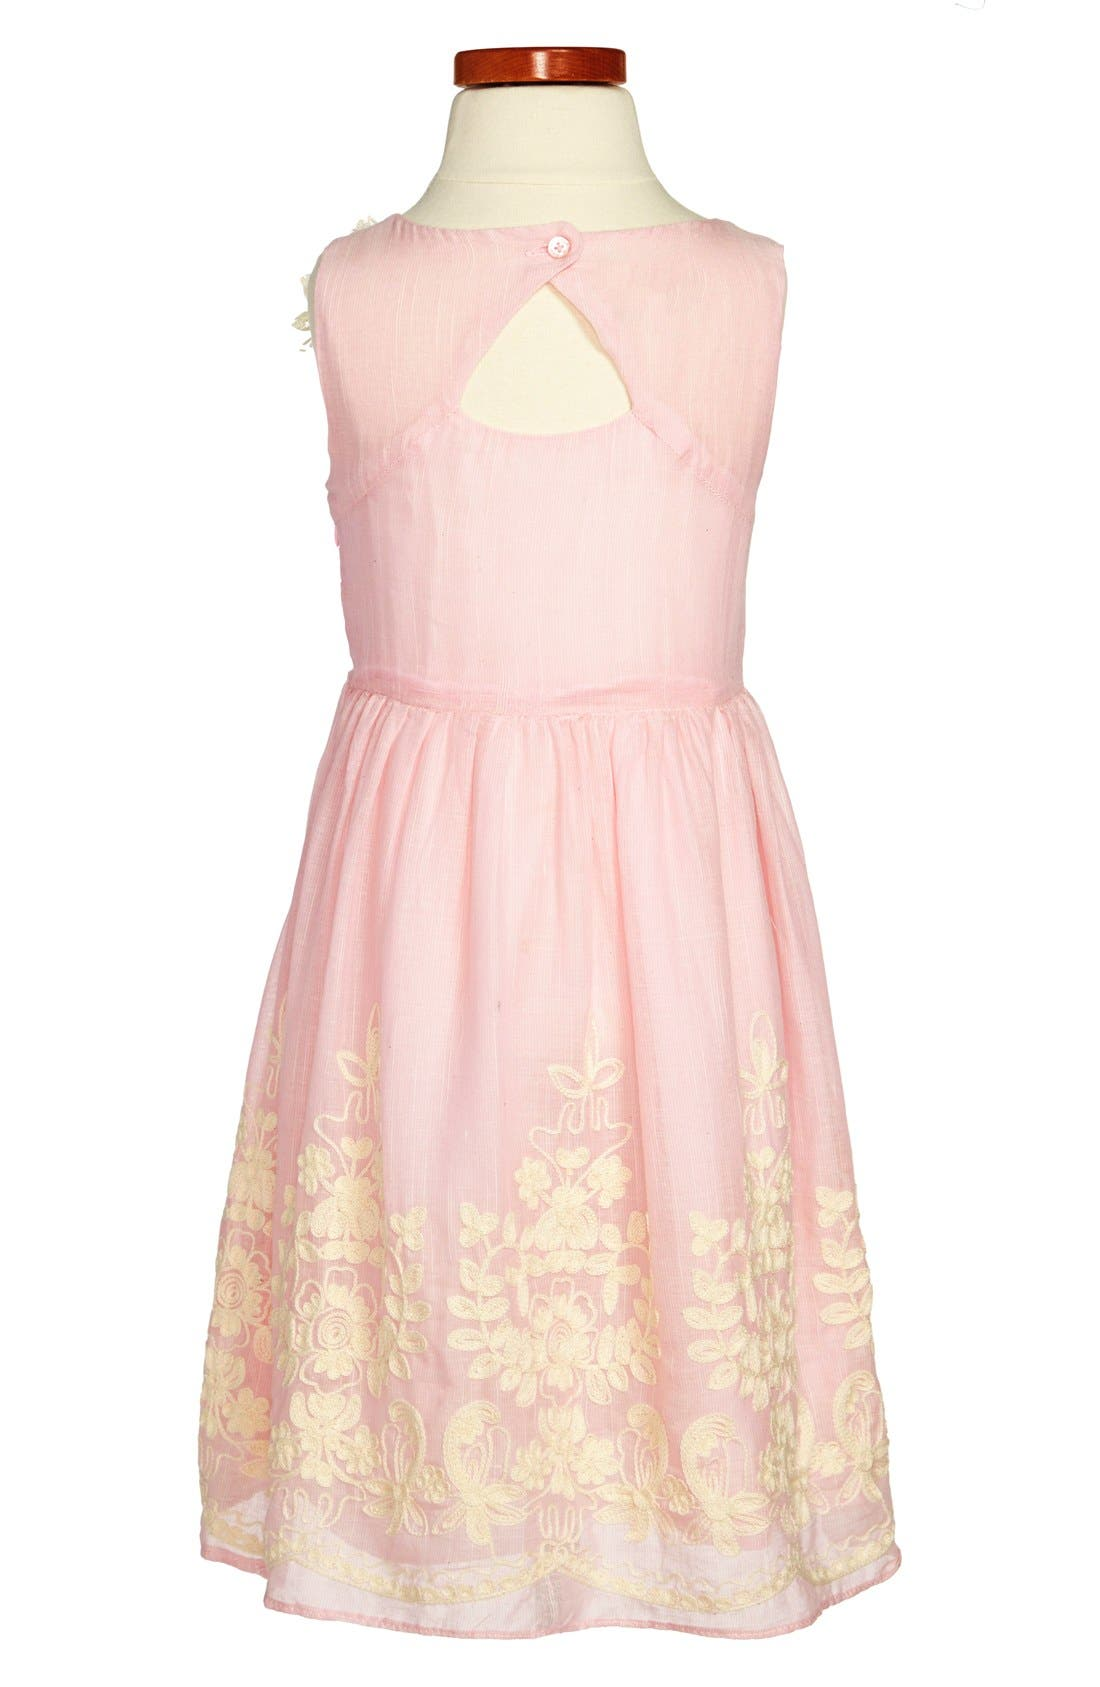 Alternate Image 2  - Pippa & Julie Embroidered Cotton Voile Dress (Toddler Girls & Little Girls)